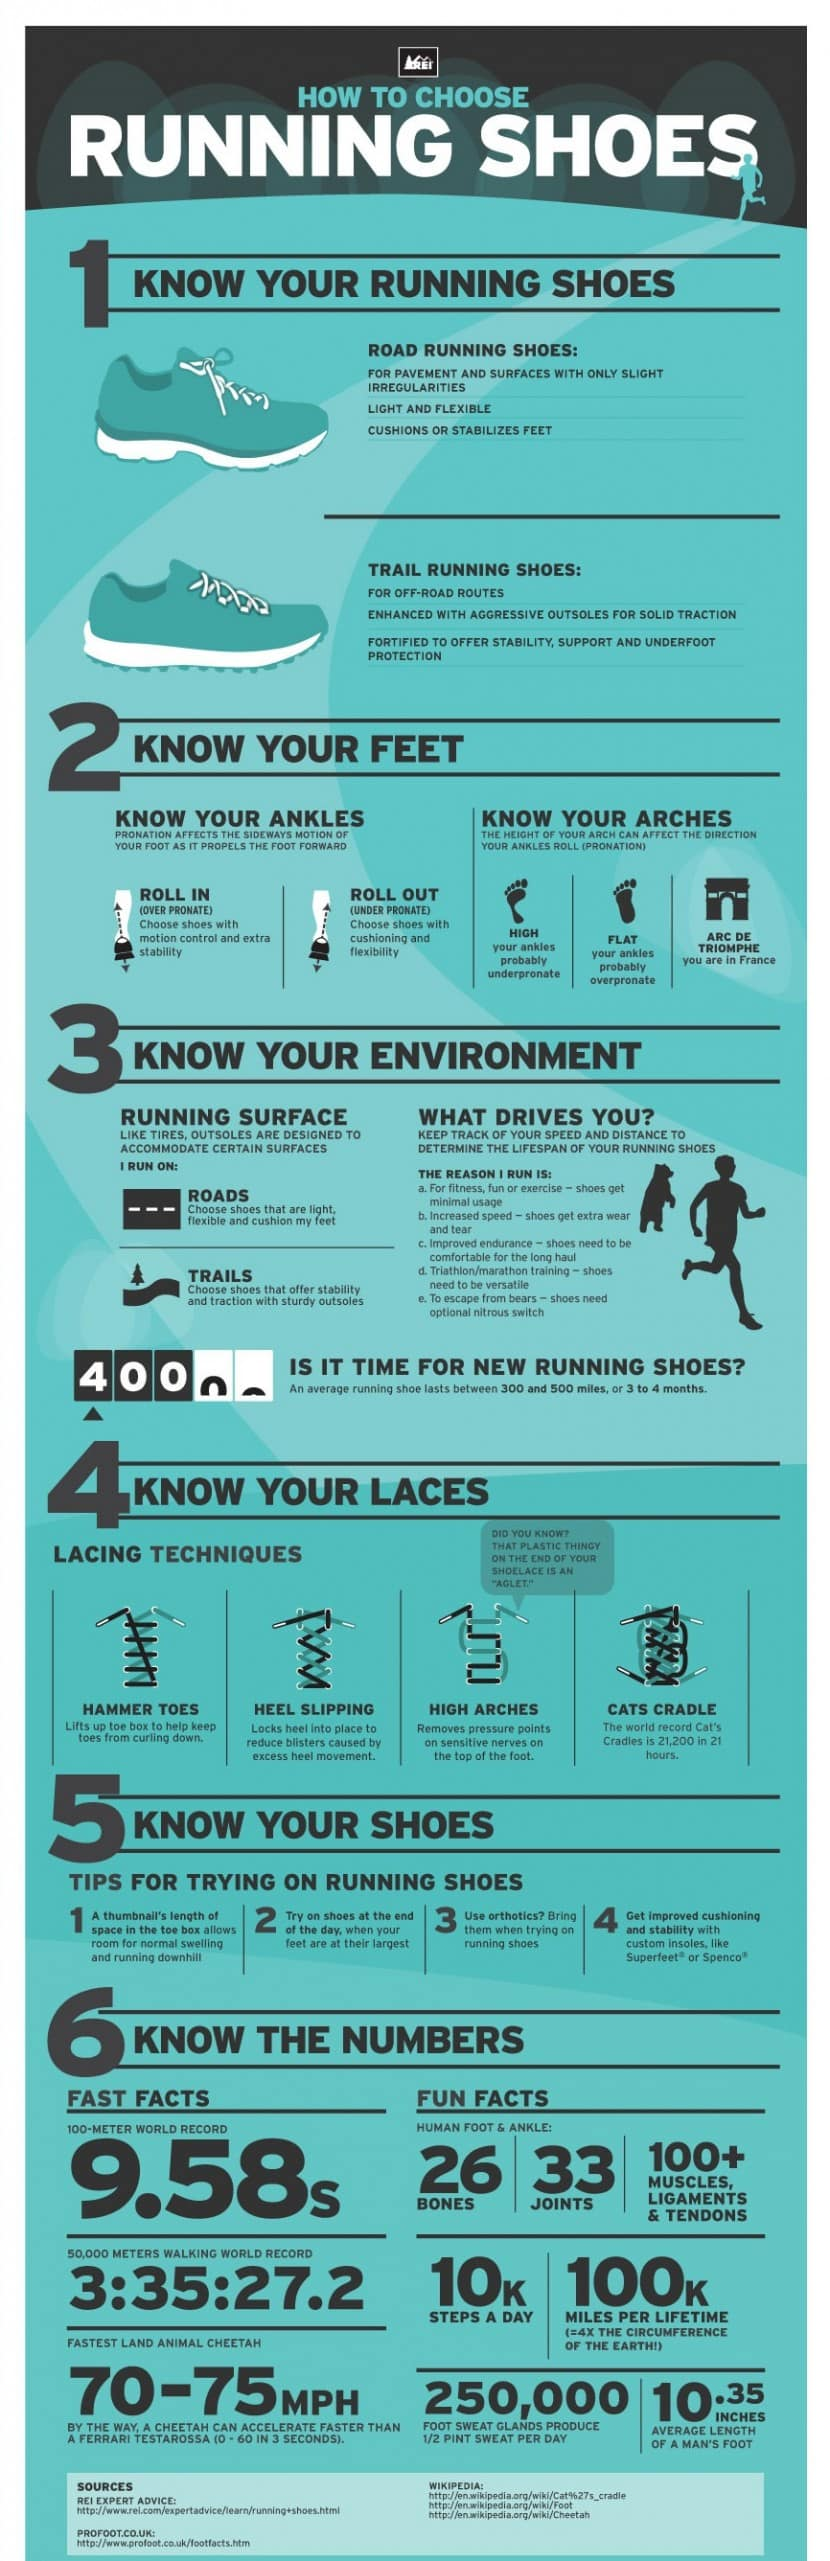 running-shoes-infographic-830x2561